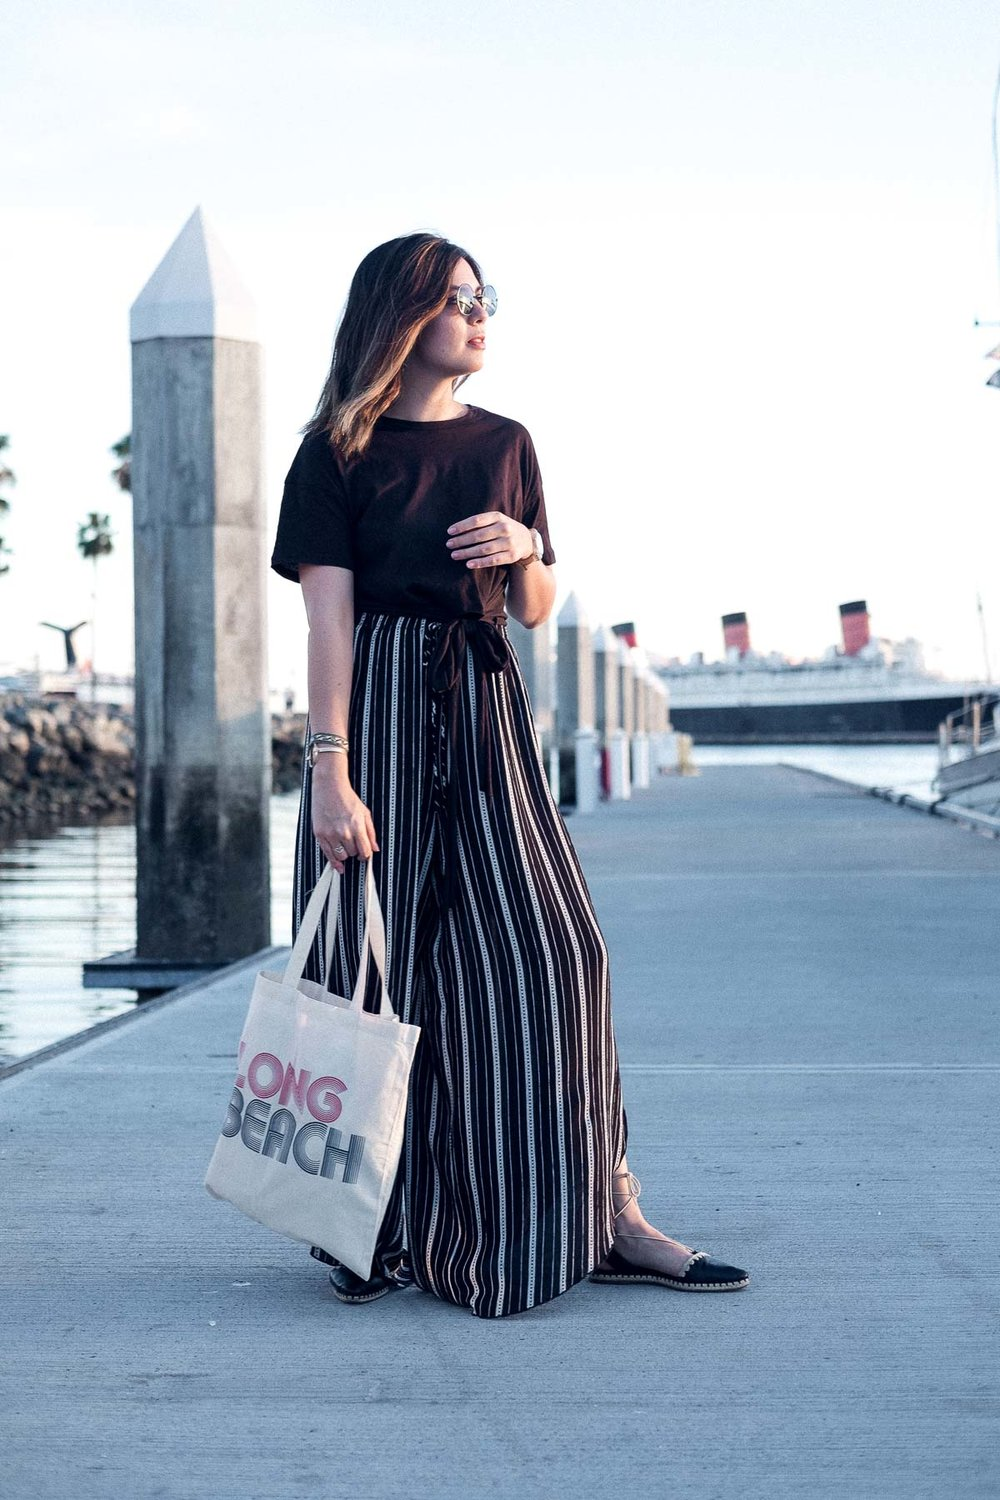 Rachel Off Duty: Wide-Legged Pants and Long Beach Tote Bag